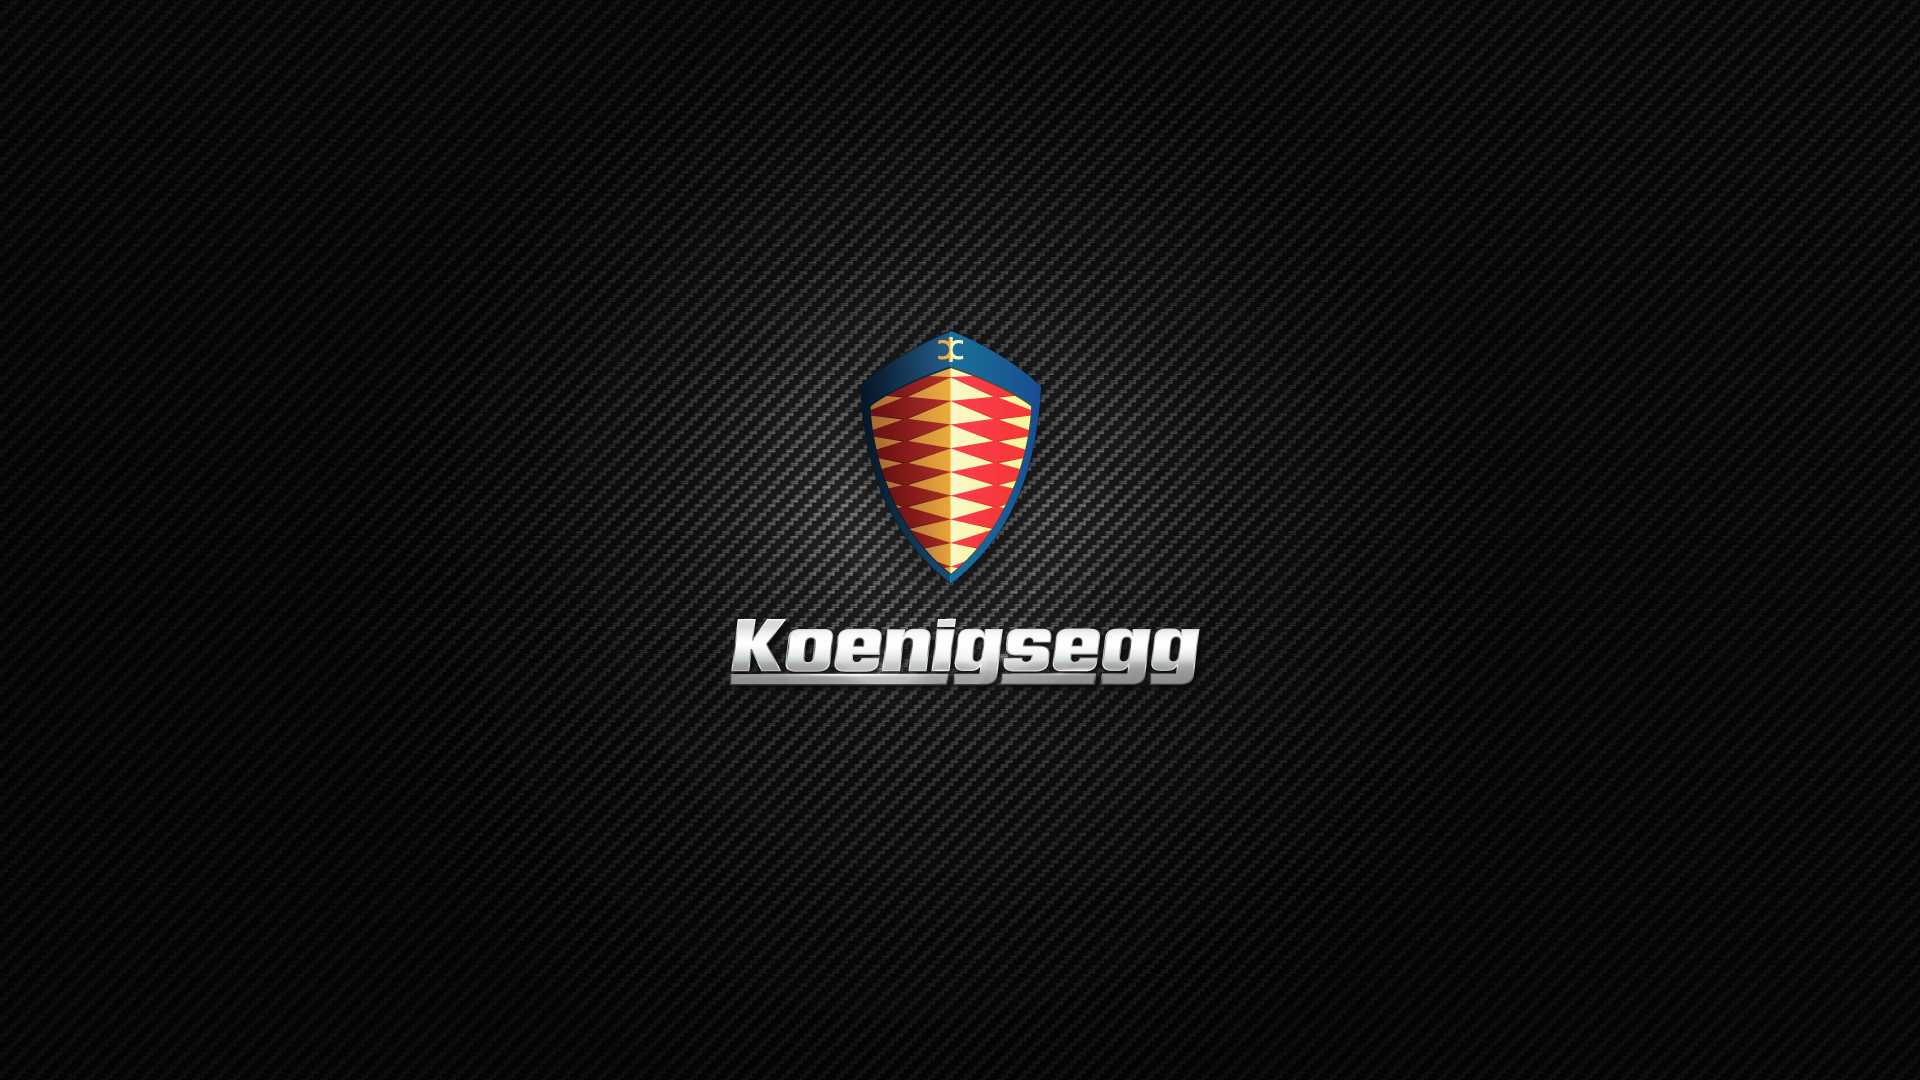 Download the following Koenigsegg Logo Wallpaper HD 41876 by clicking the  orange button positioned underneath the